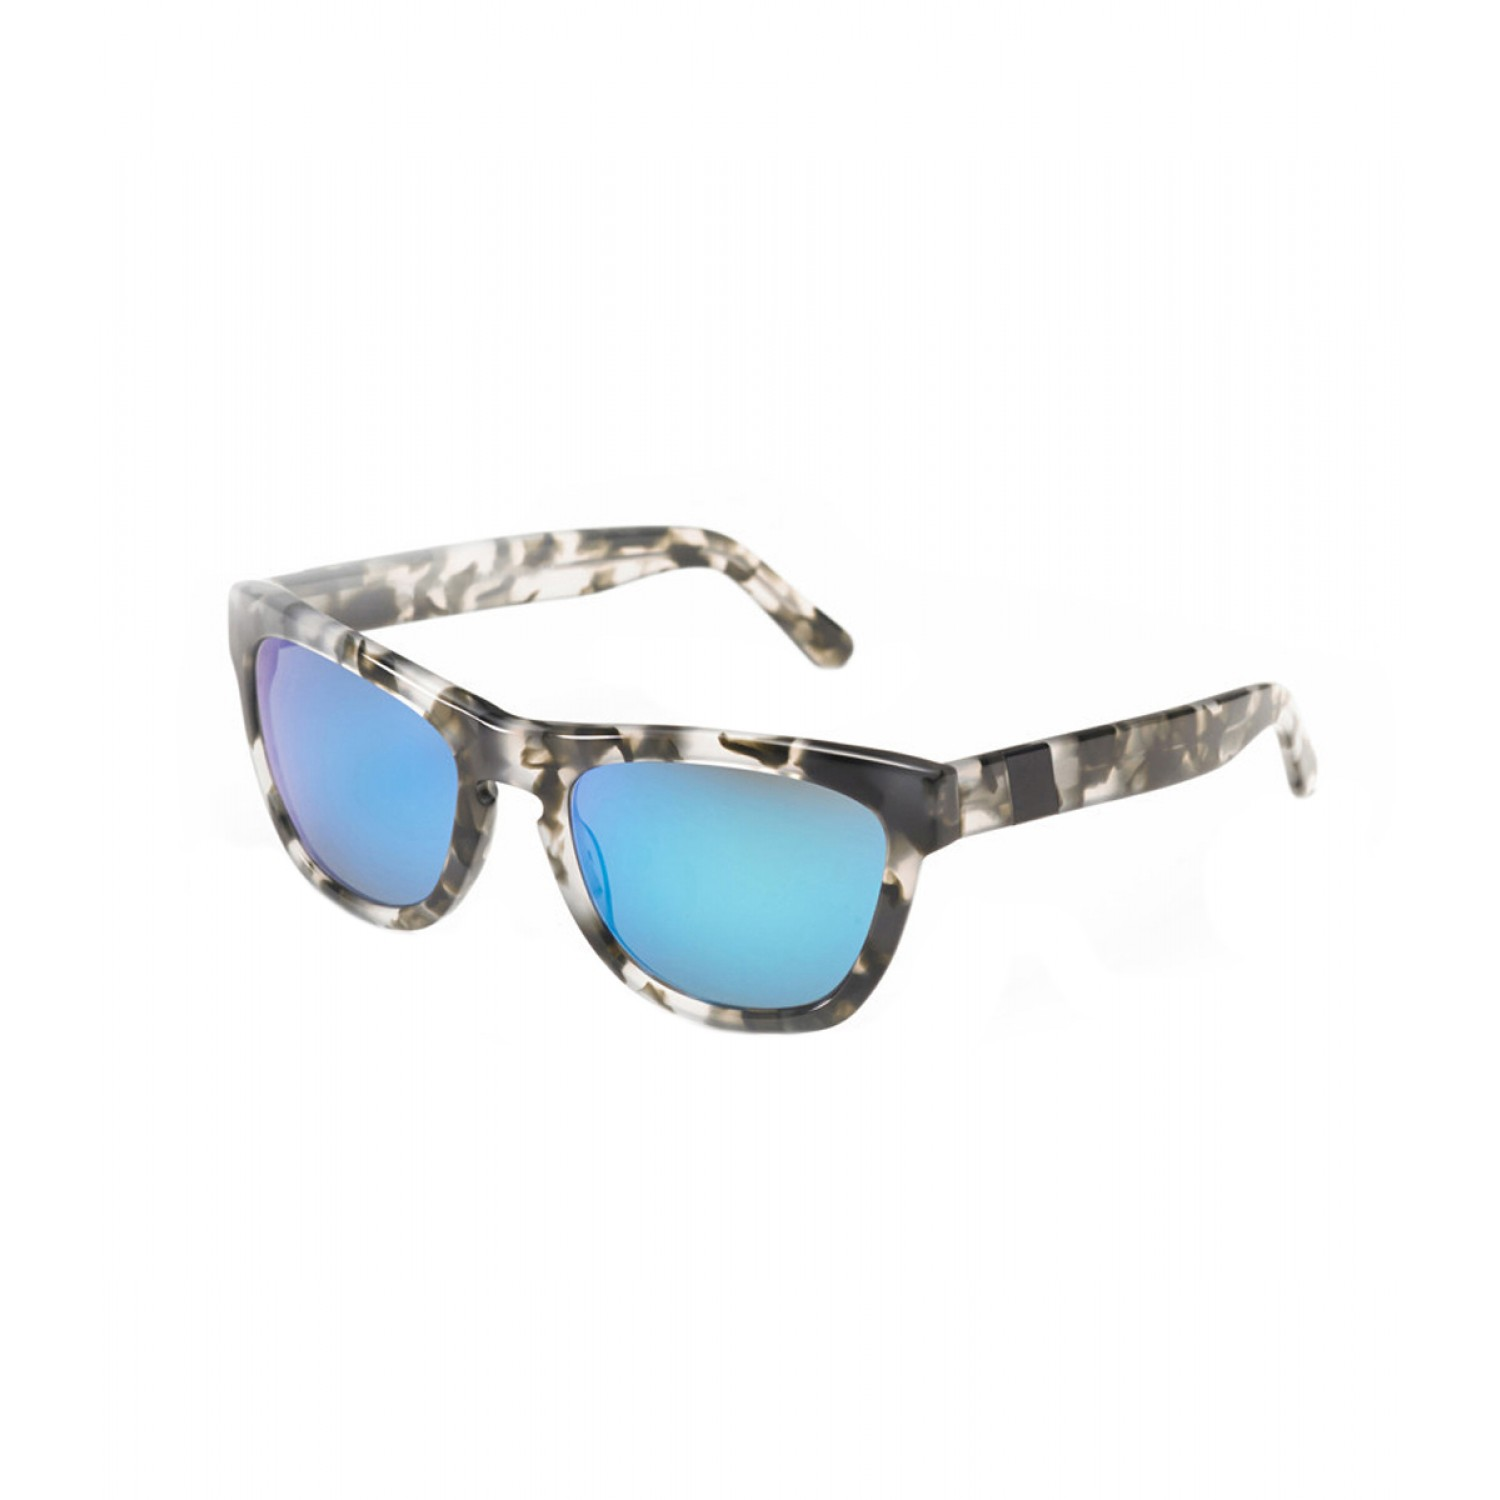 Westward Leaning Black Aluminum Accent Blue Pepper Tortoise Sunglasses - Tortoise Shell Wayfarer Sunglasses - ShopBAZAAR